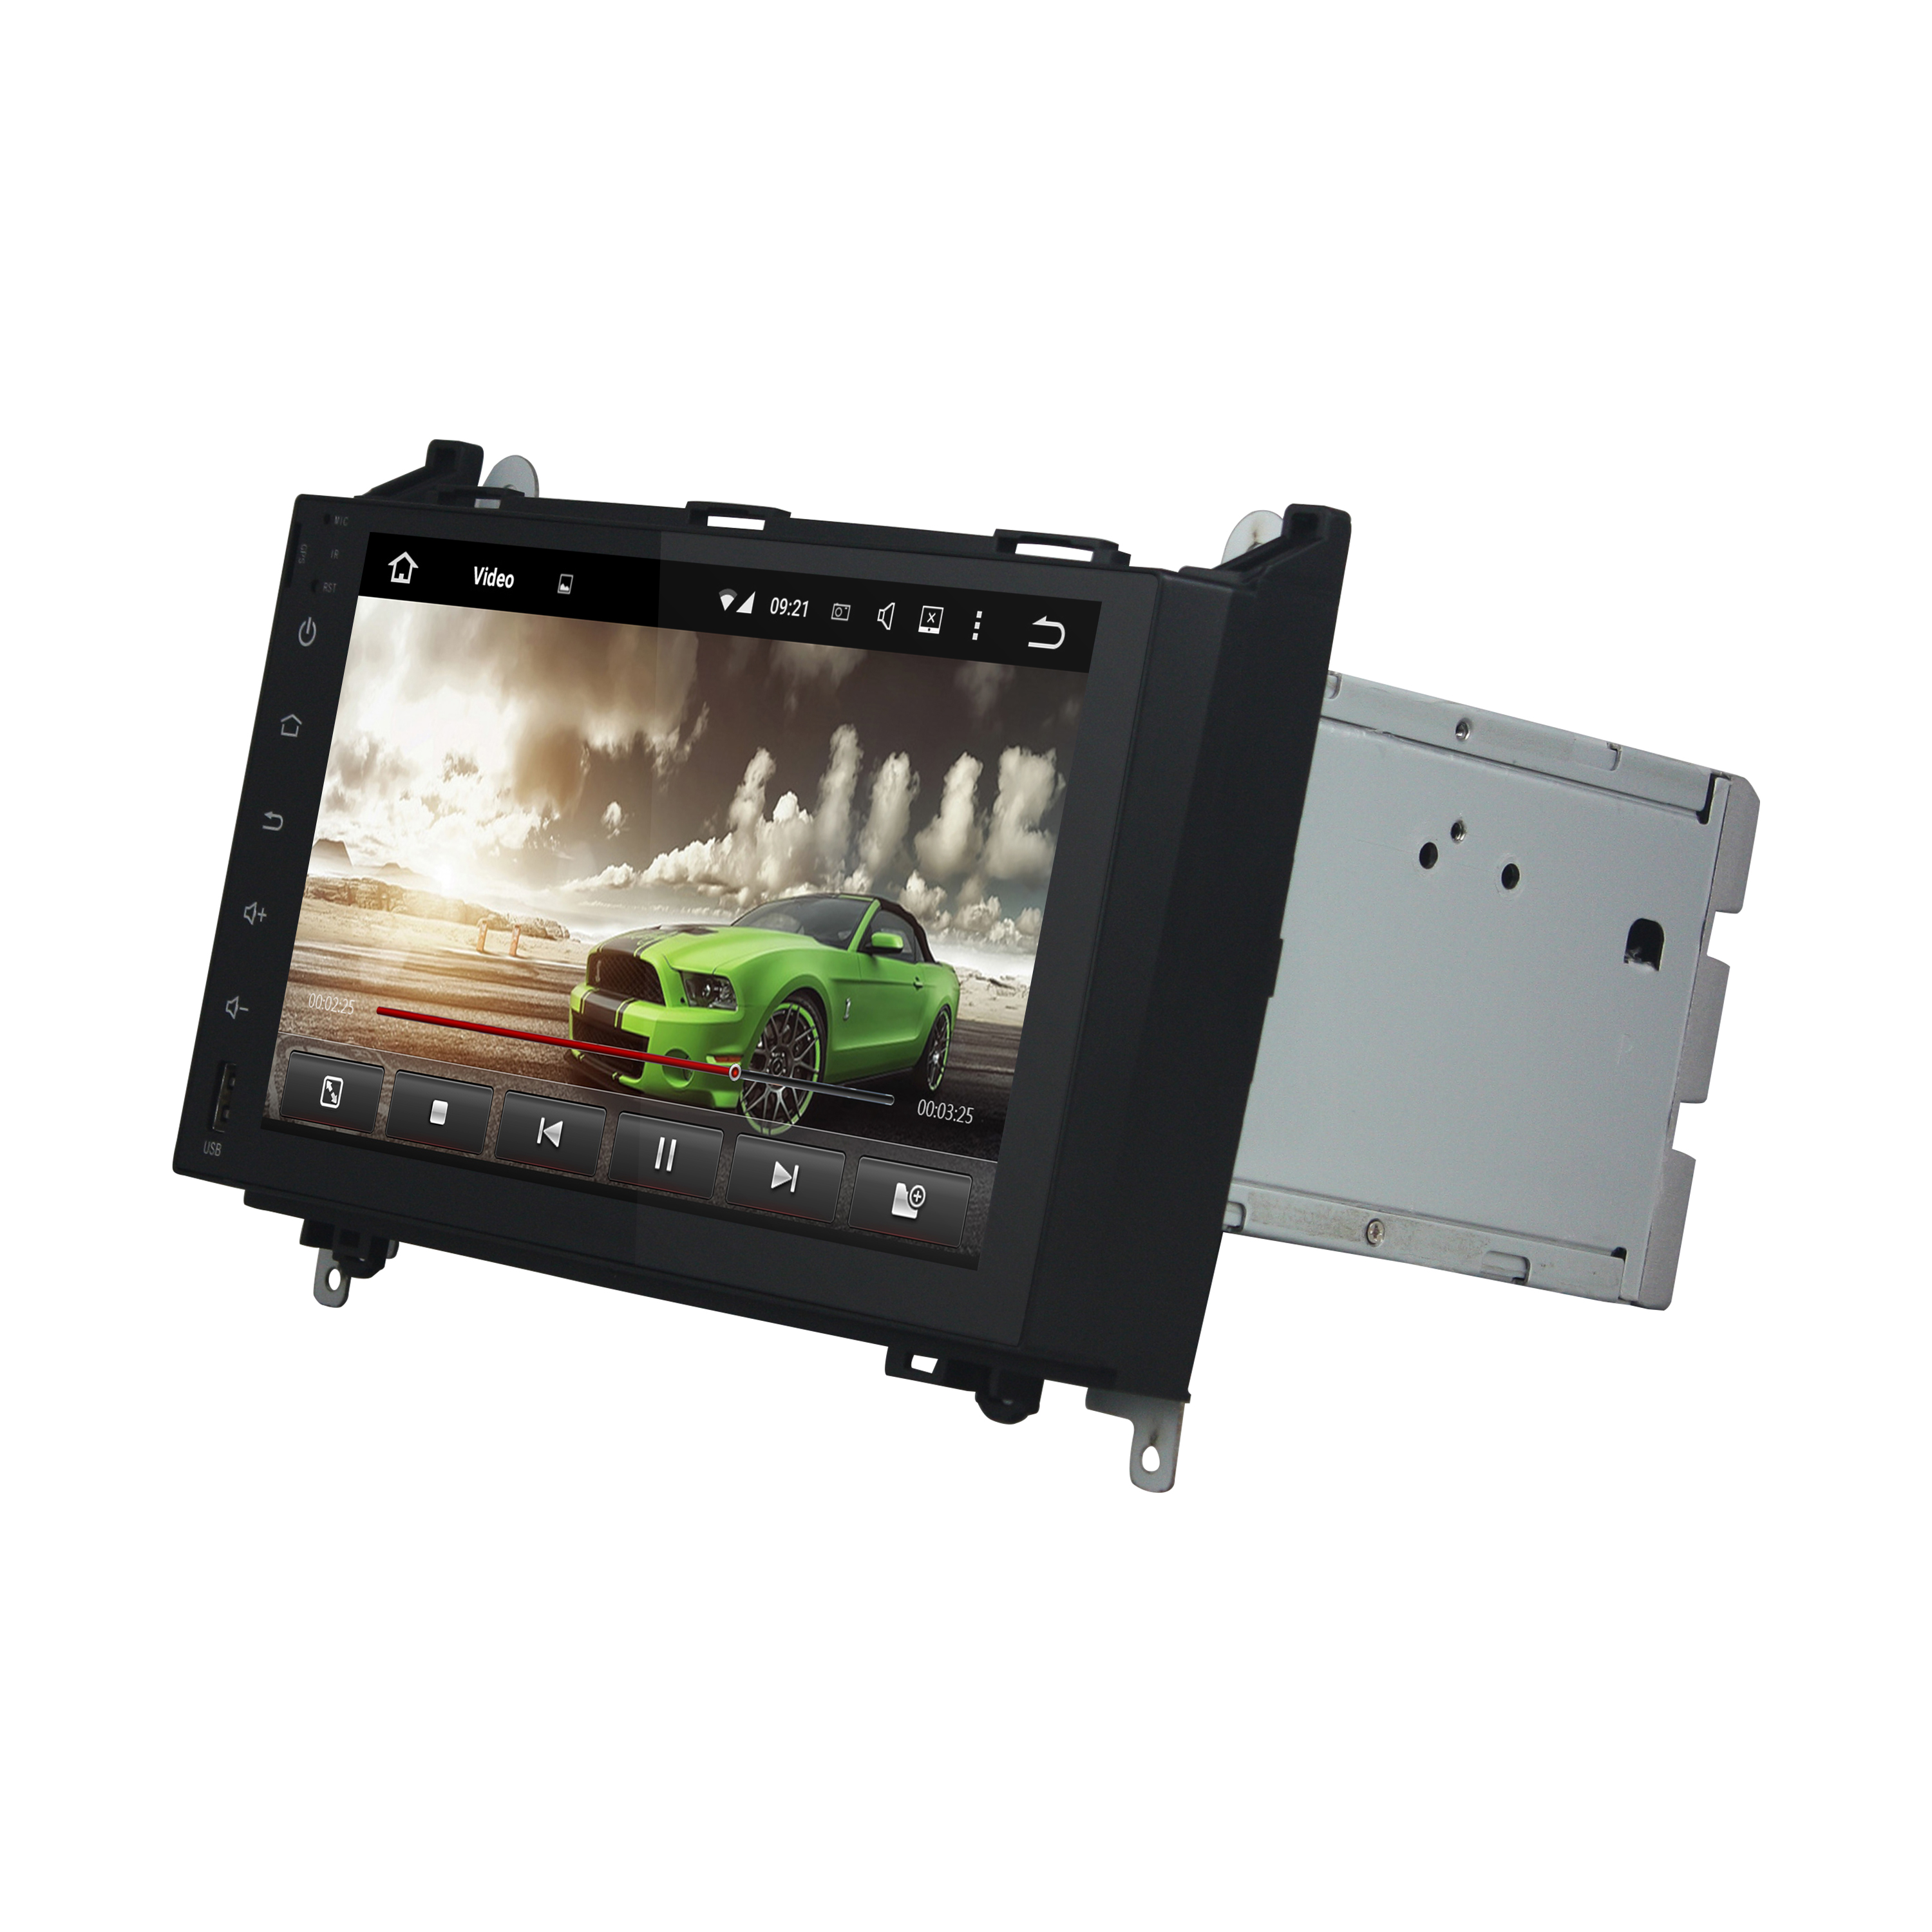 4GB RAM Octa Core 9 Android 9.0 Car Audio DVD Player for Mercedes Benz B200 W169 W245 Viano Vito With Radio GPS WIFI BT TV USB